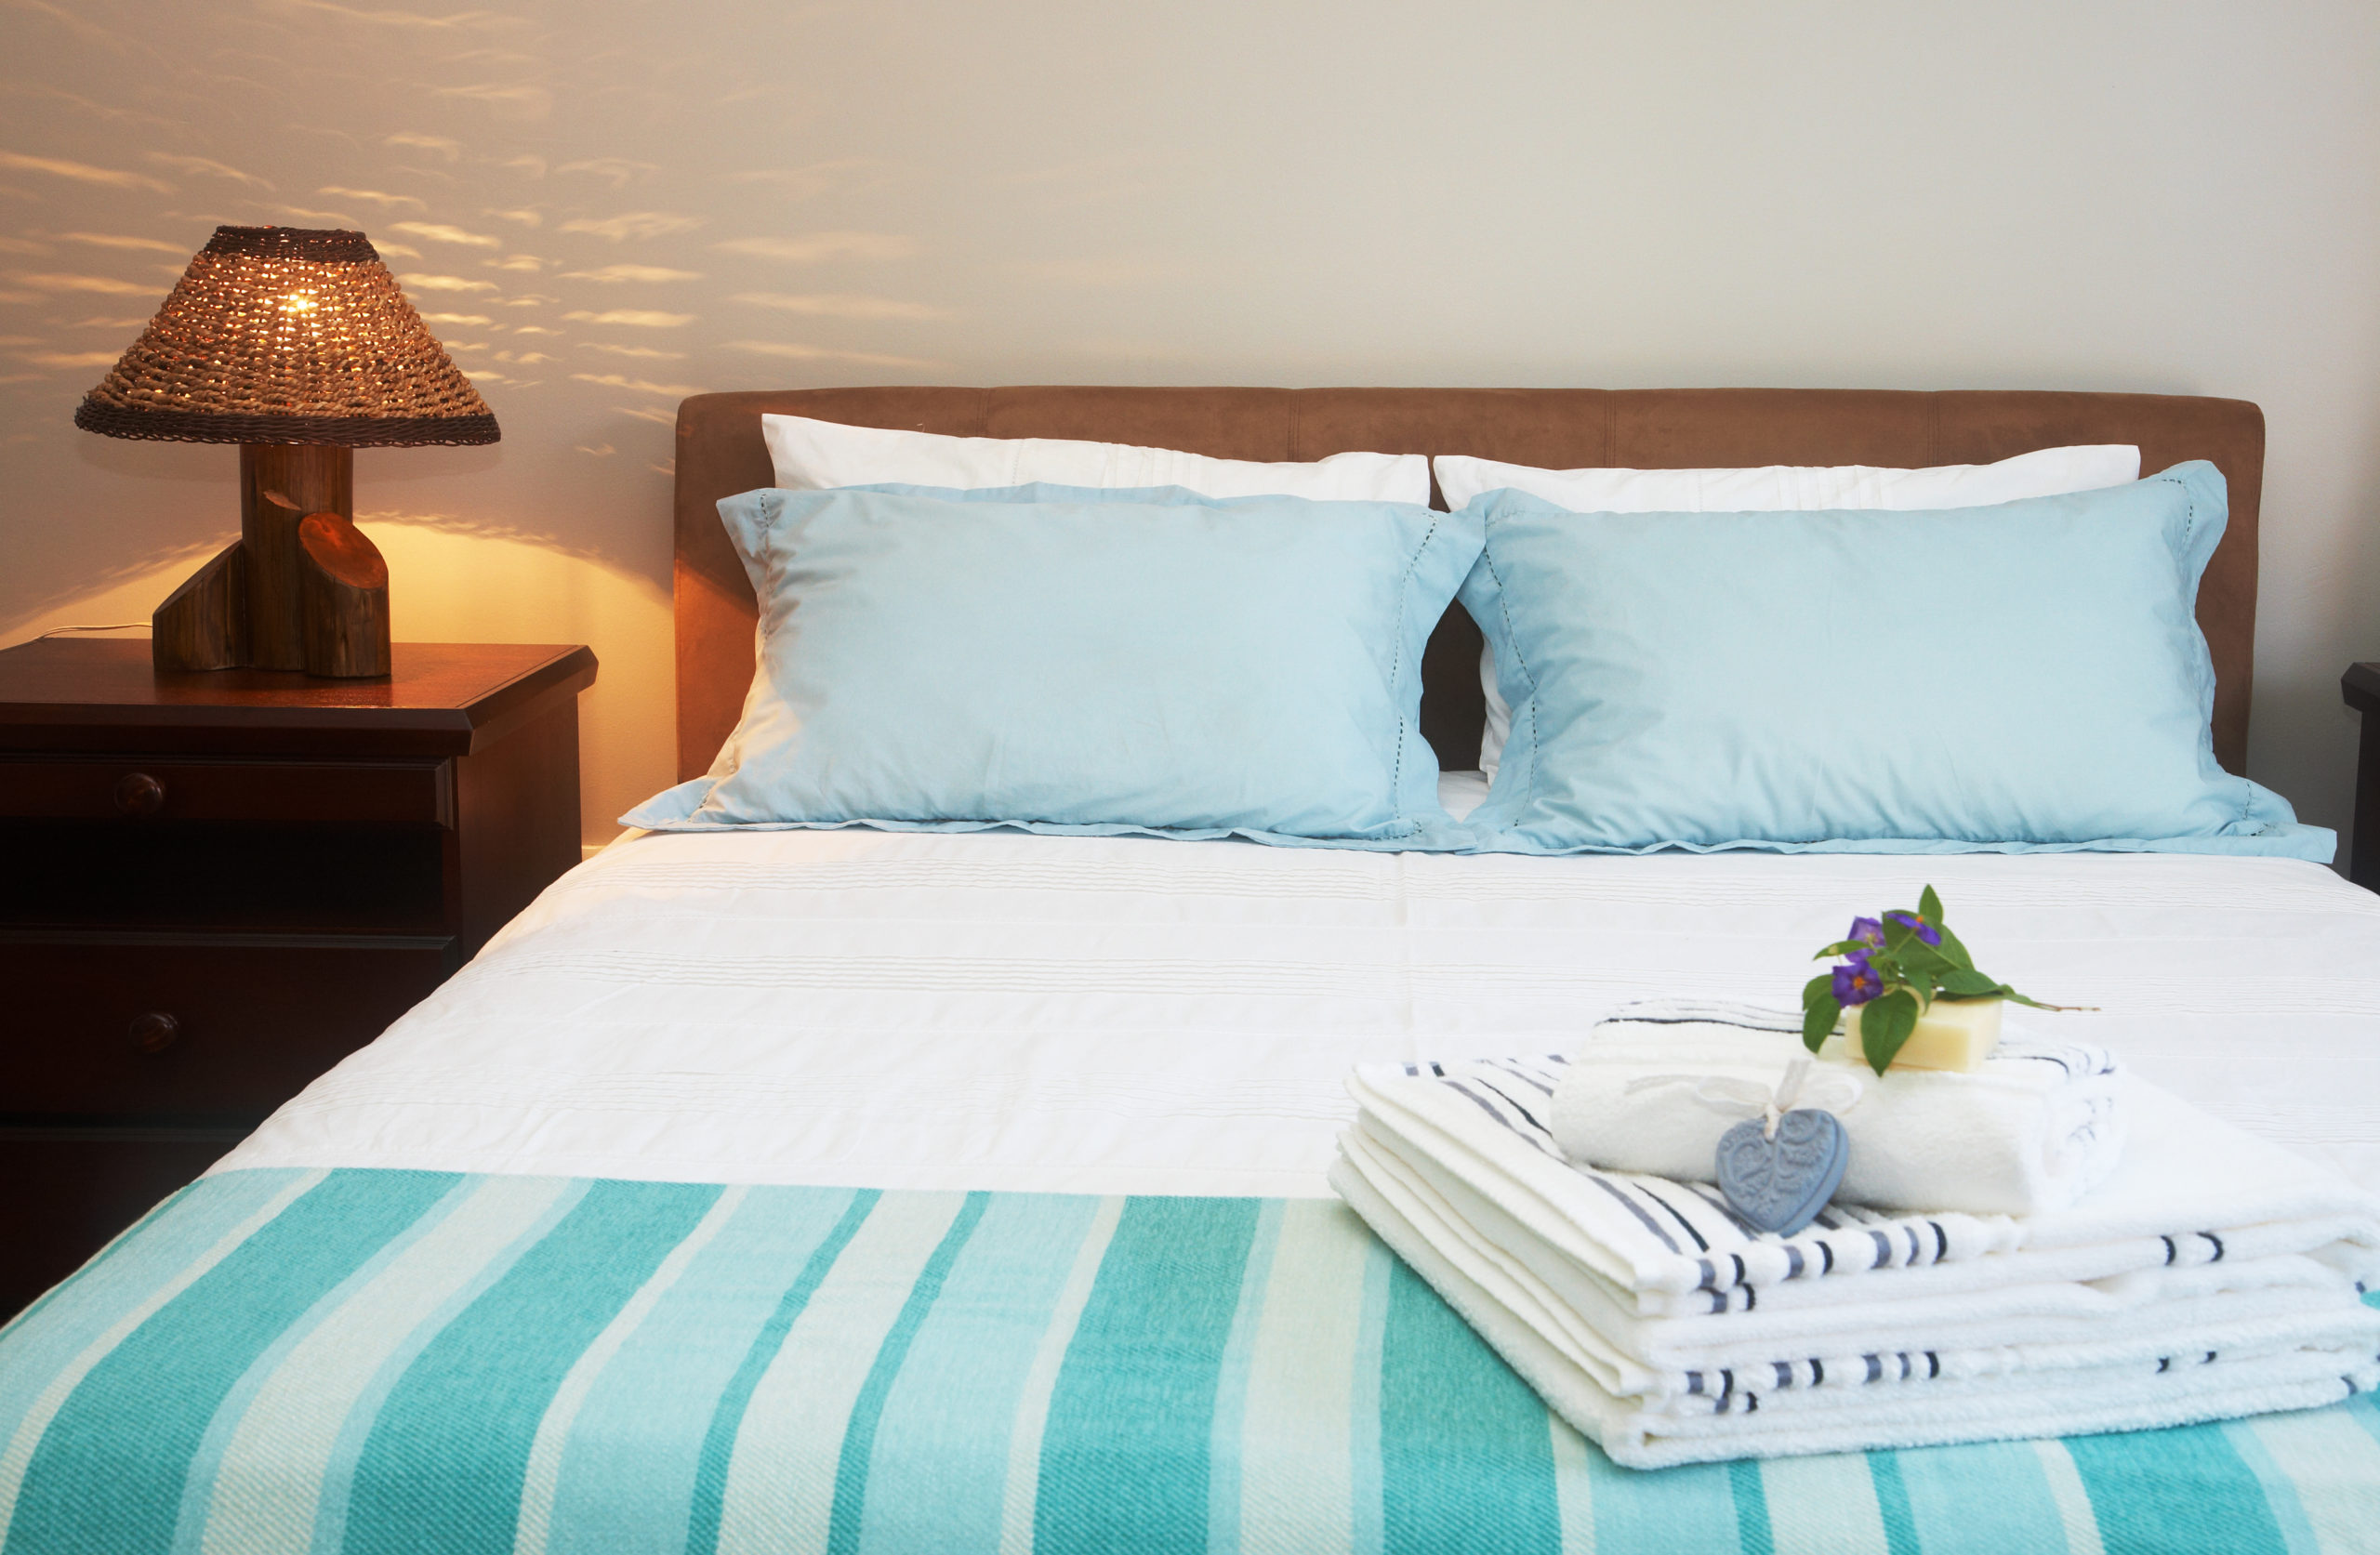 guestroom with little touches like towels, snack